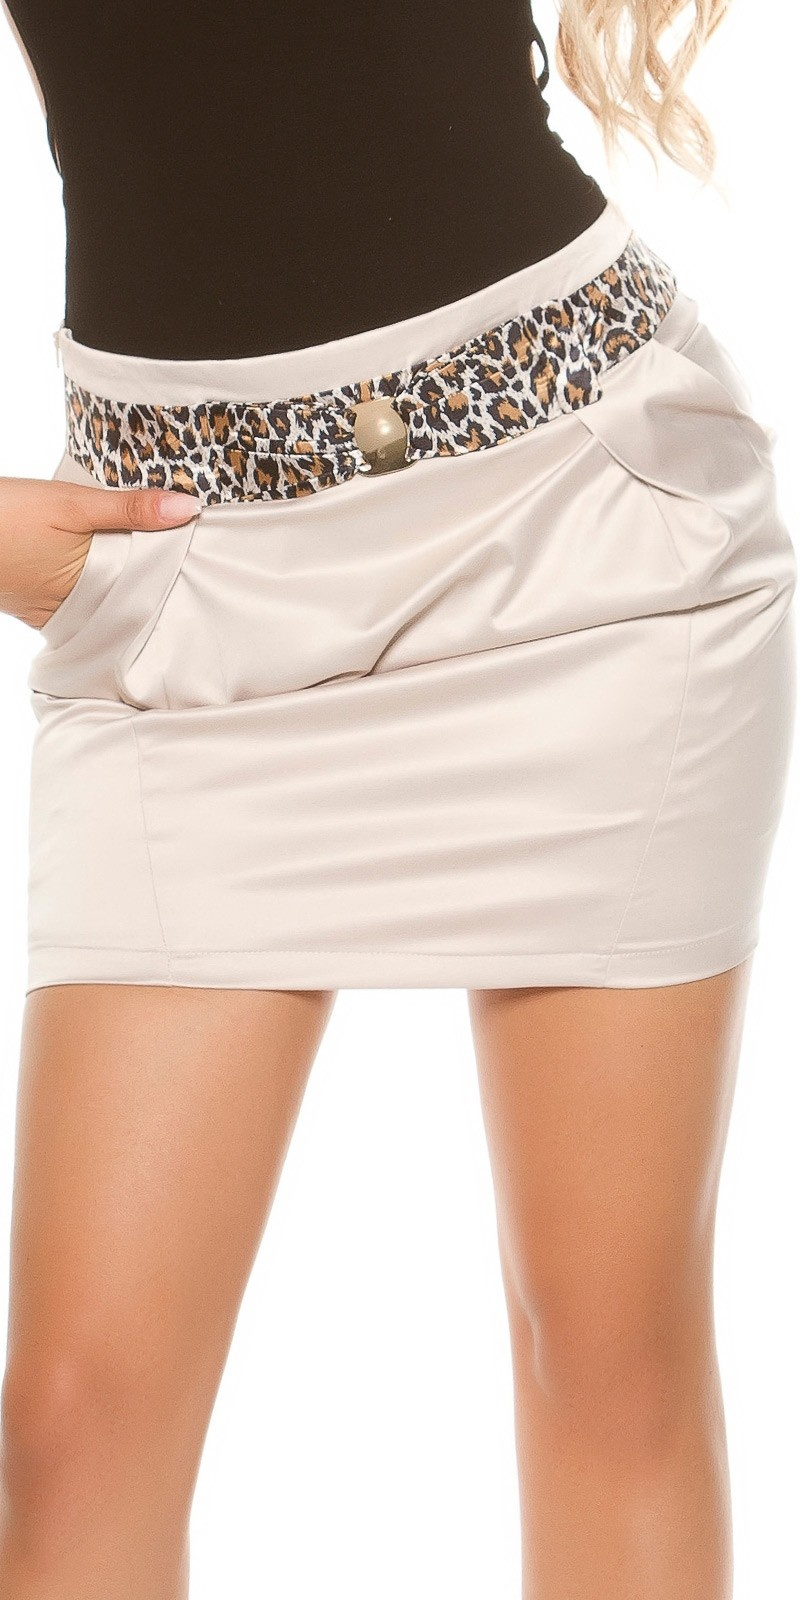 Sexy miniskirt in businesslook with stiched belt Beige